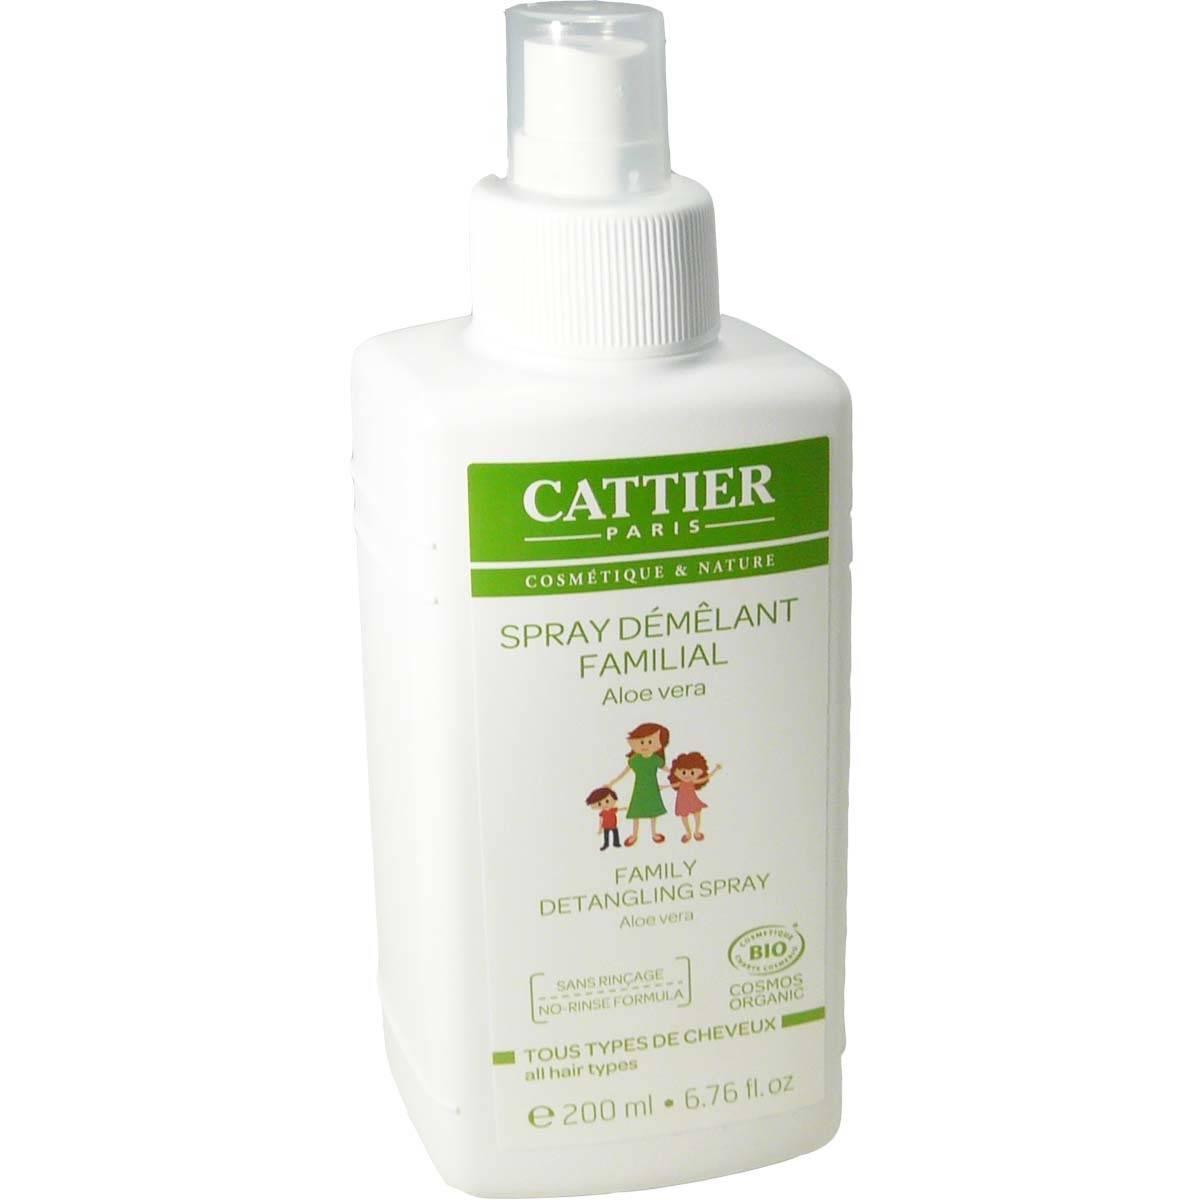 Cattier spray demelant familial a l'aloe vera 200ml